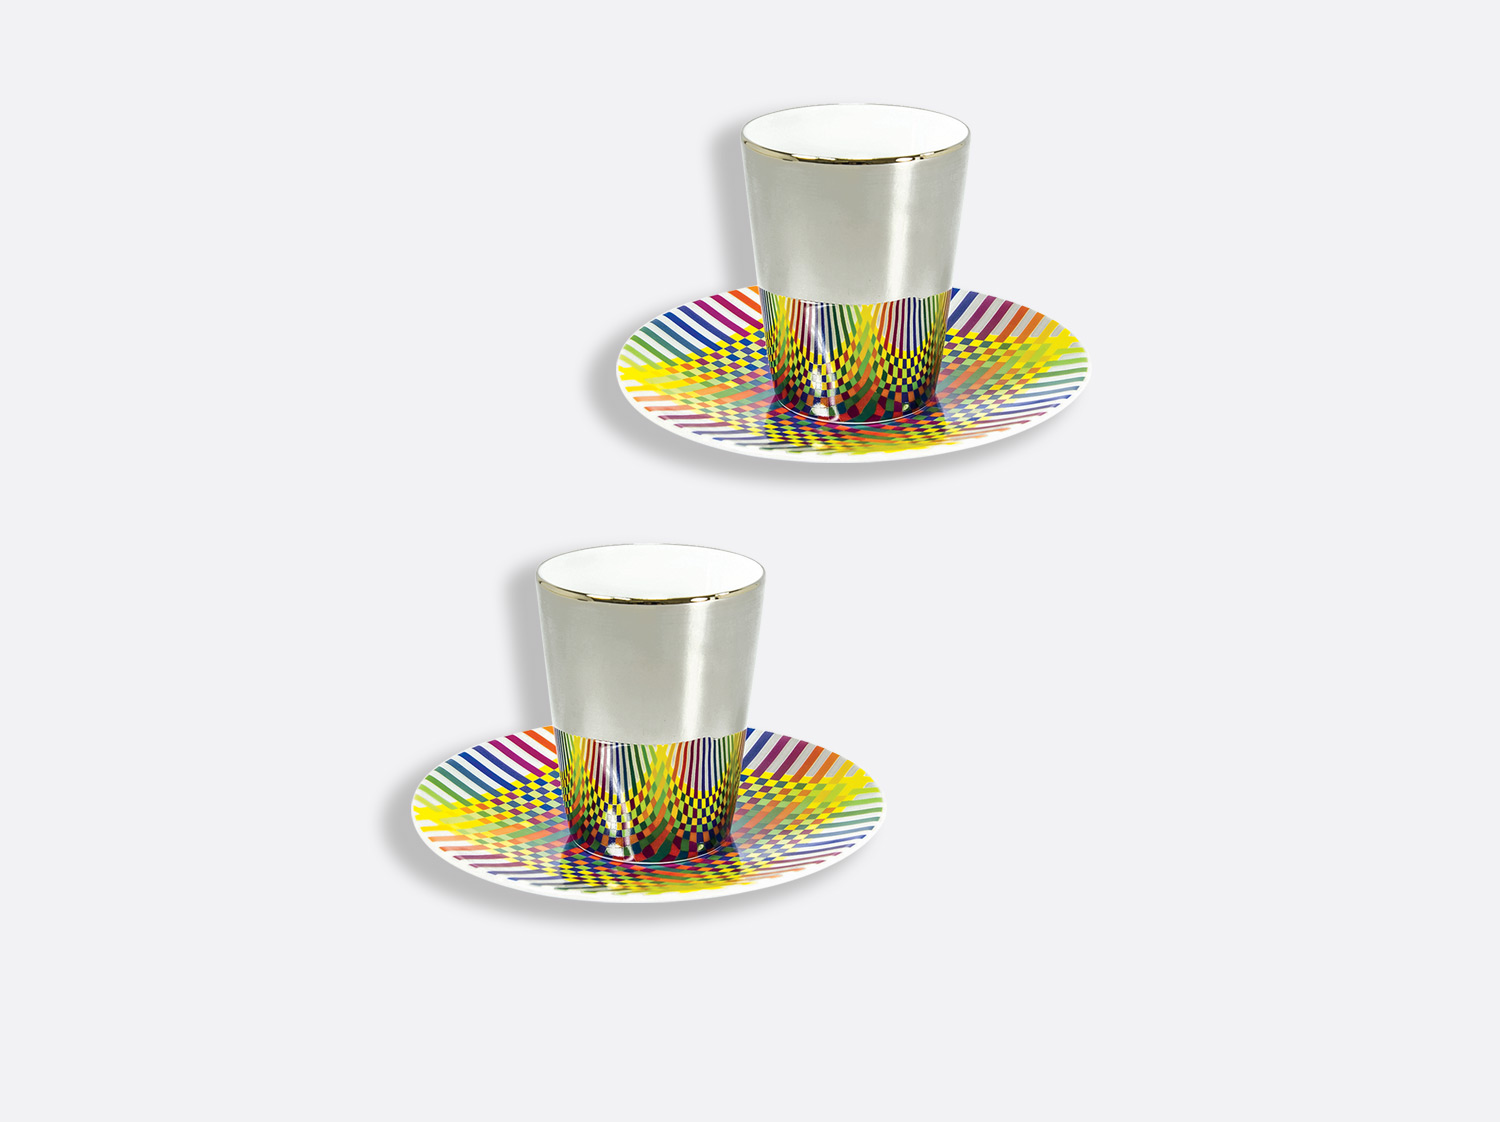 China Set of 2 platinum espresso cups and saucers 7 cl of the collection Surface colorée B29 | Bernardaud